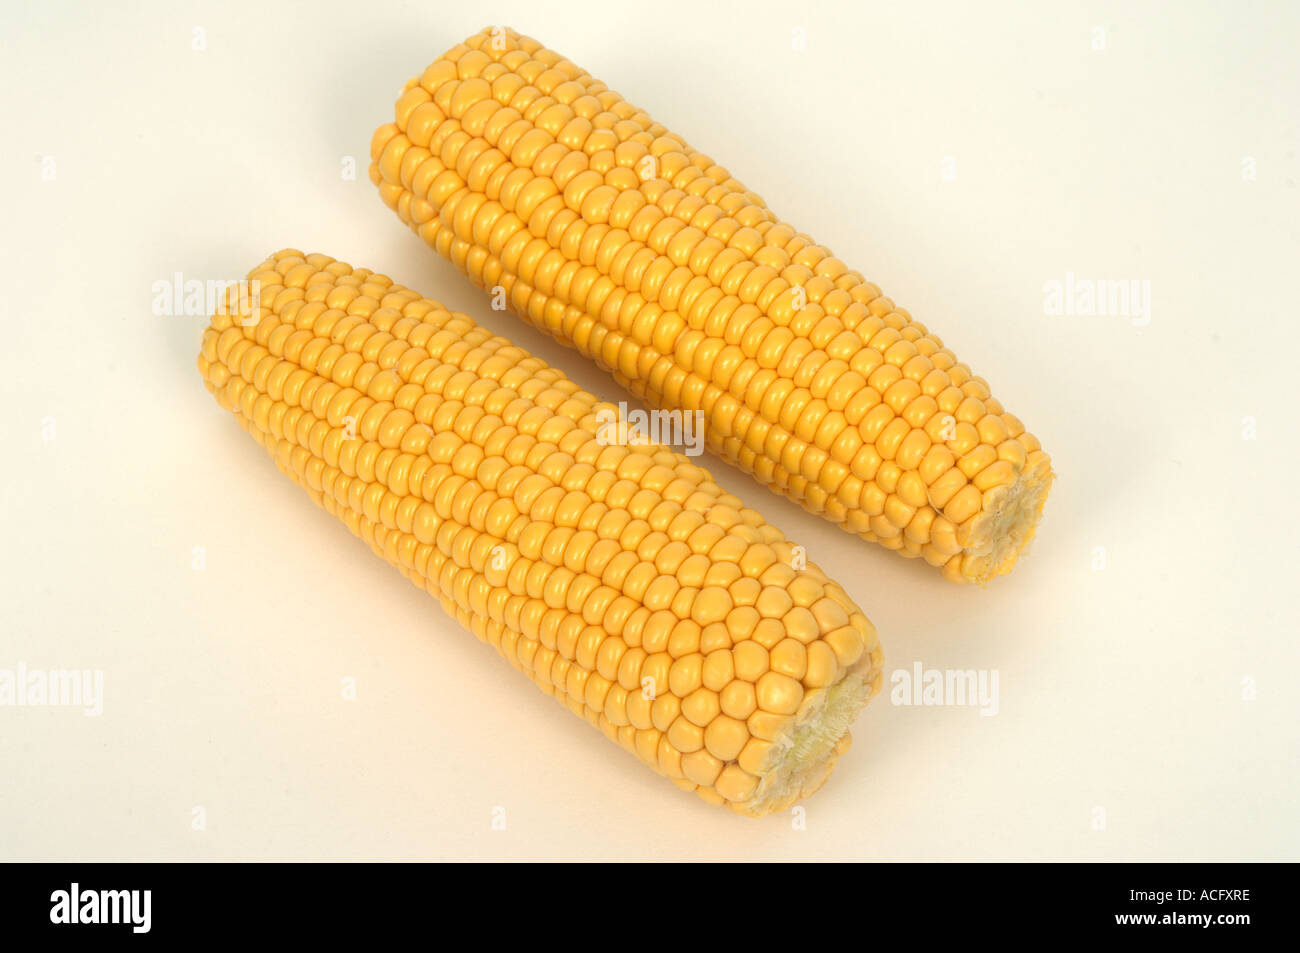 Vegetable produce typical supermarket bought cut trimmed sweetcorn cobs - Stock Image